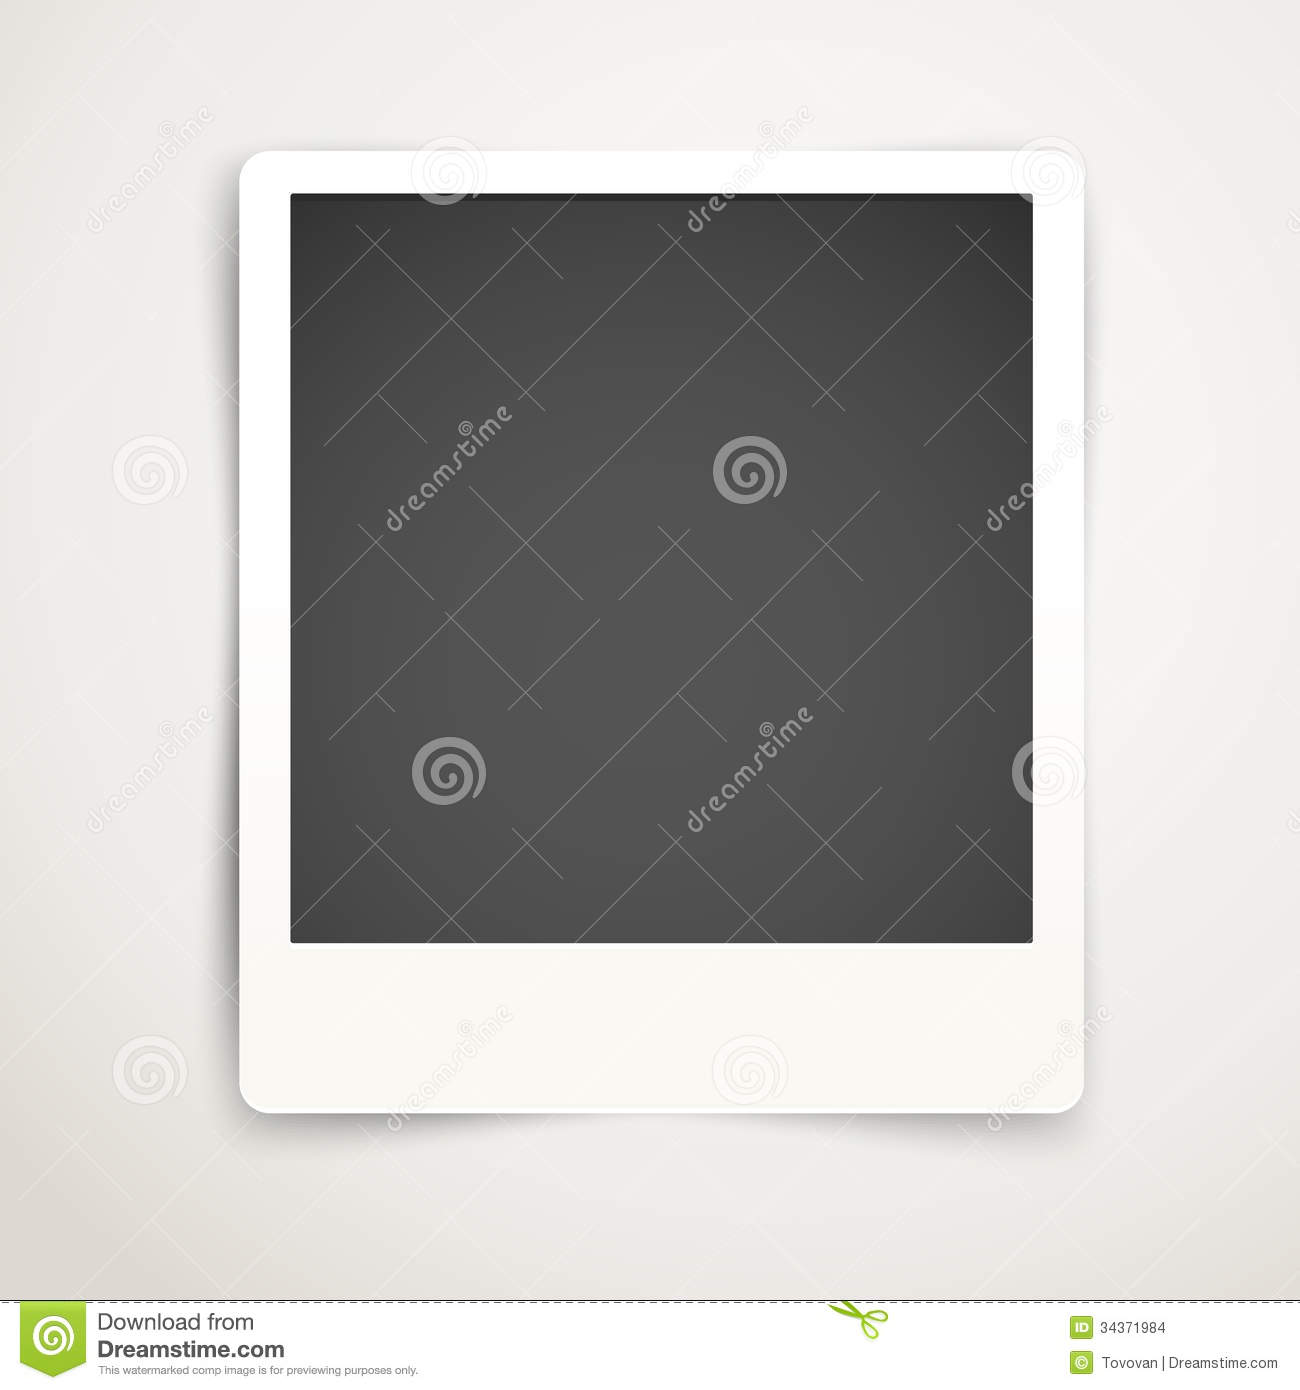 Blank Photo Frame Template Stock Images - Image: 34371984